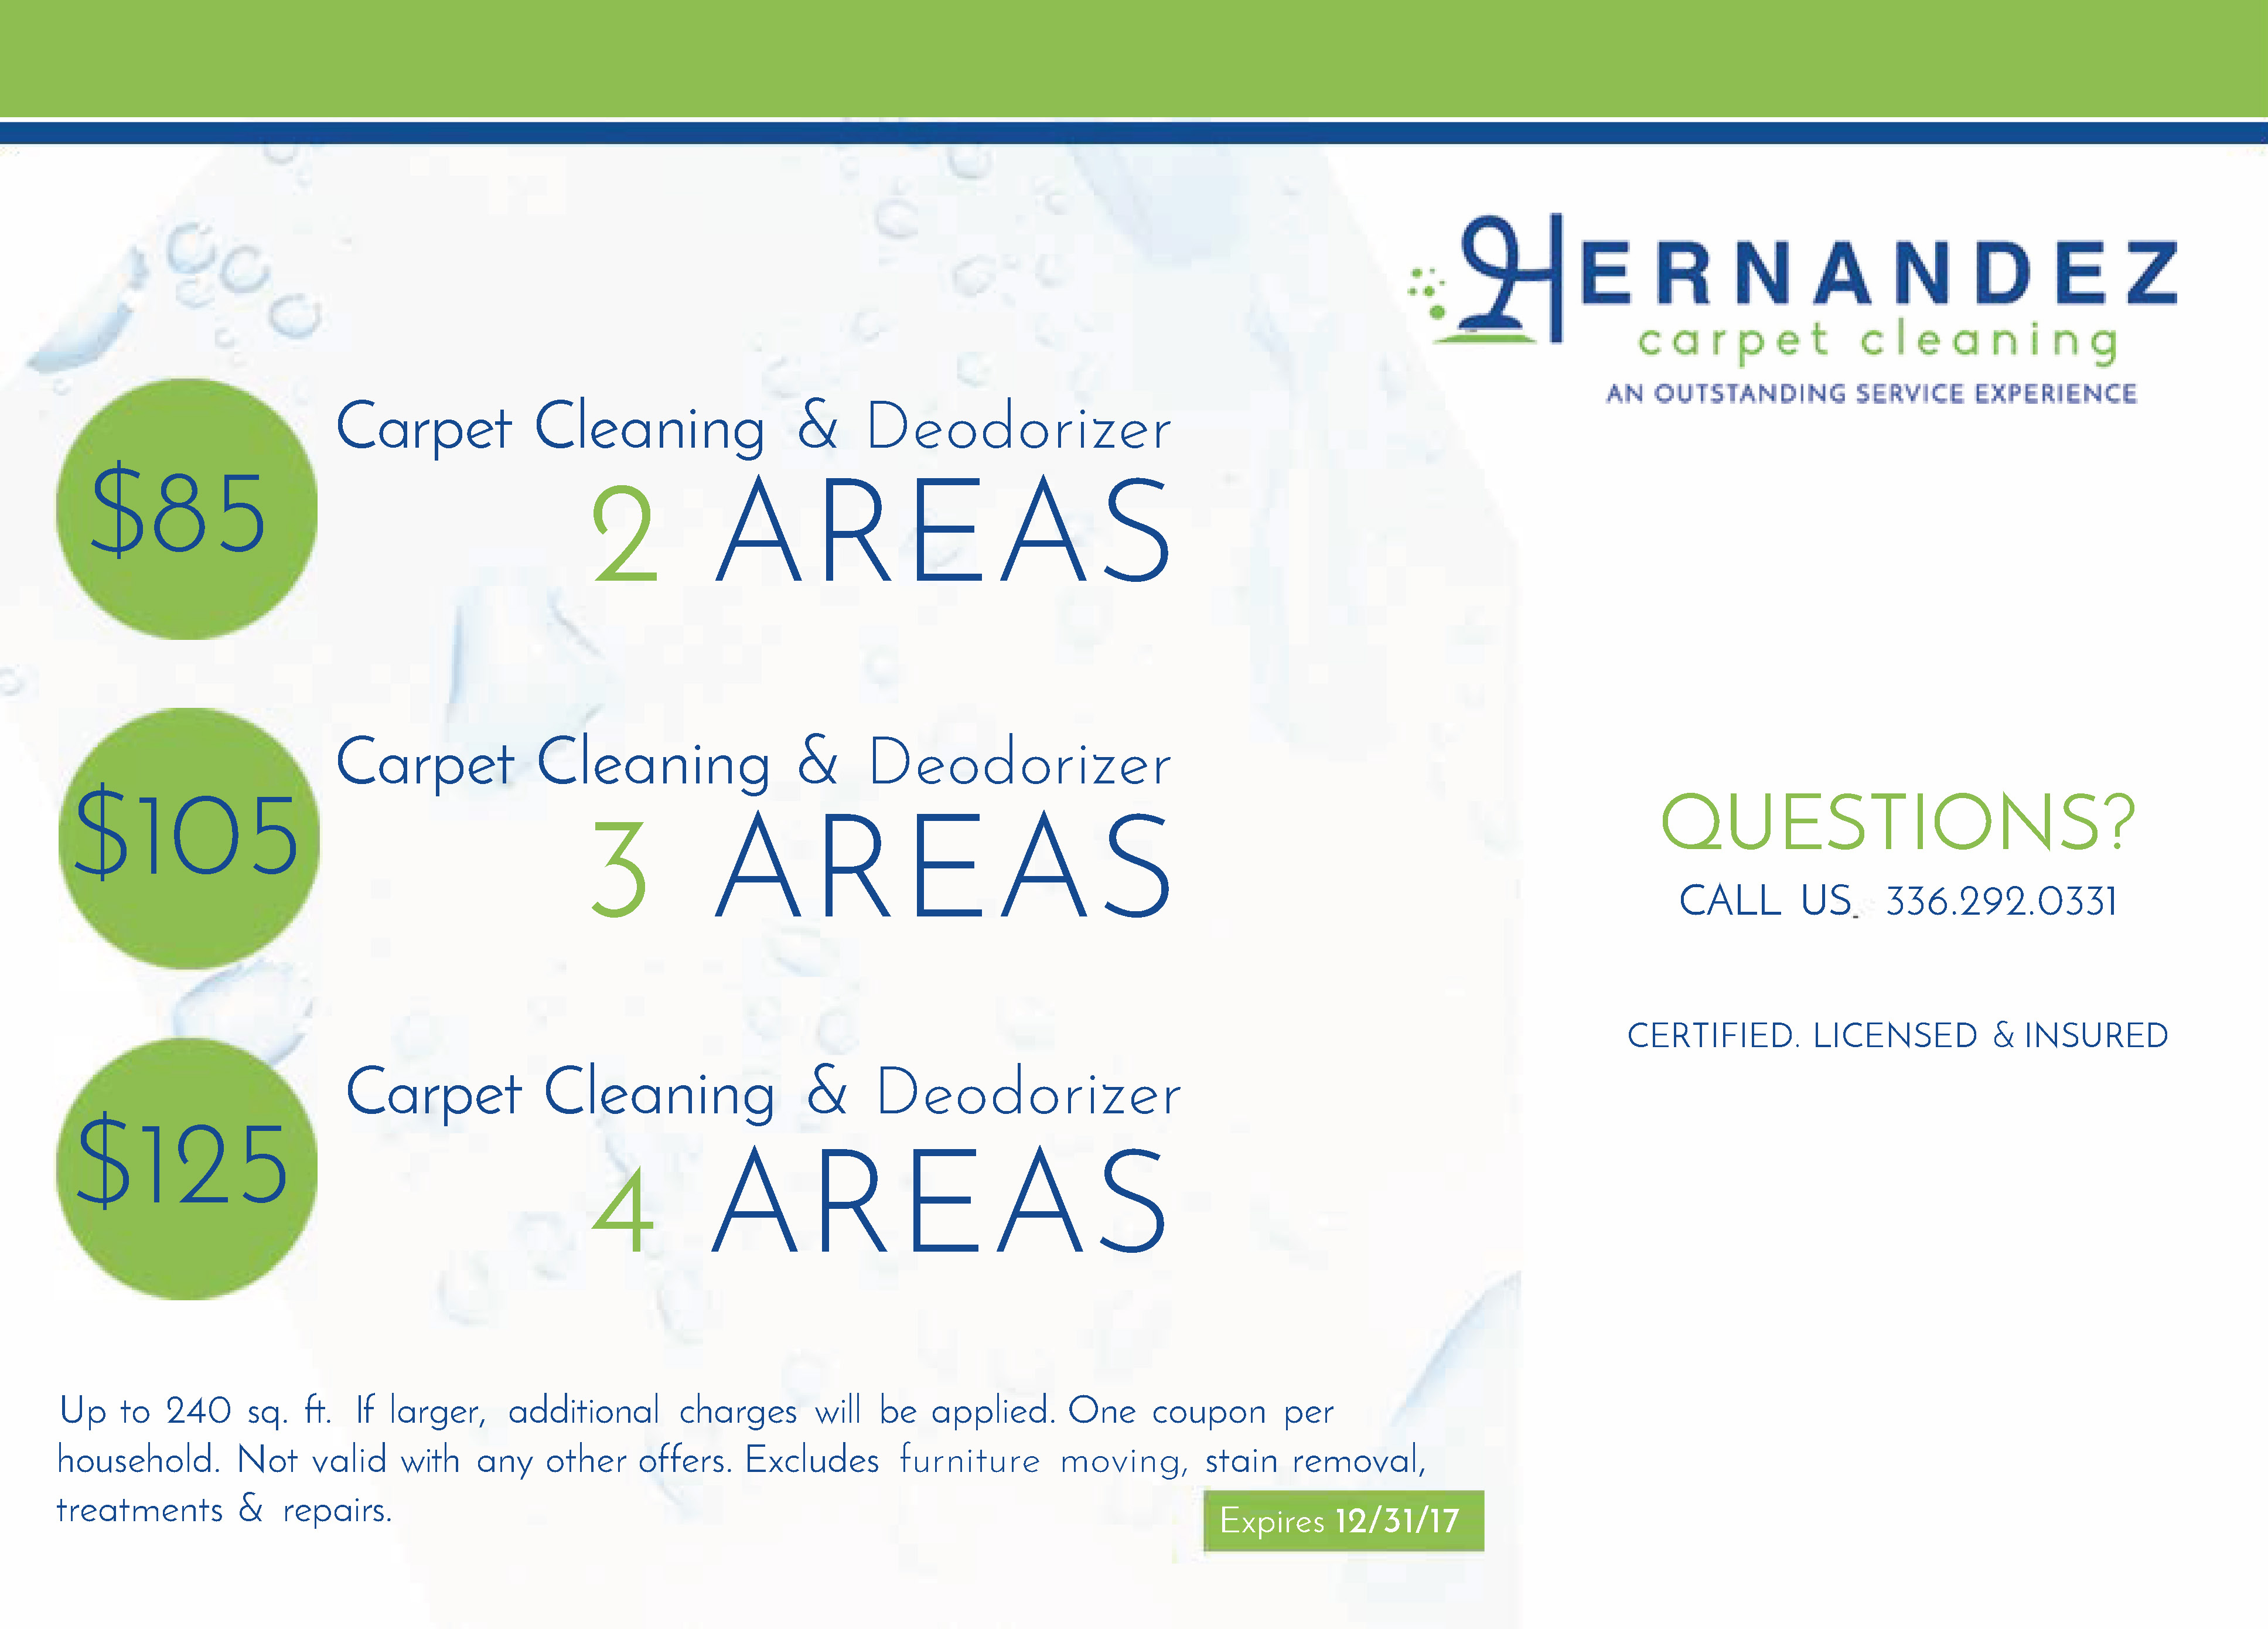 Whether you need carpet cleaning, furniture and upholstery cleaning, tile and grout work or even water damage restoration, all of our team members are trained to deliver the most outstanding service experience sell-lxhgfc.ml for our technical knowledge, we are second to none. Carpet Cleaning in Alexandria, Fairfax, Arlington, Sterling, & Beyond. Our trained staff is proud to provide the best carpet.